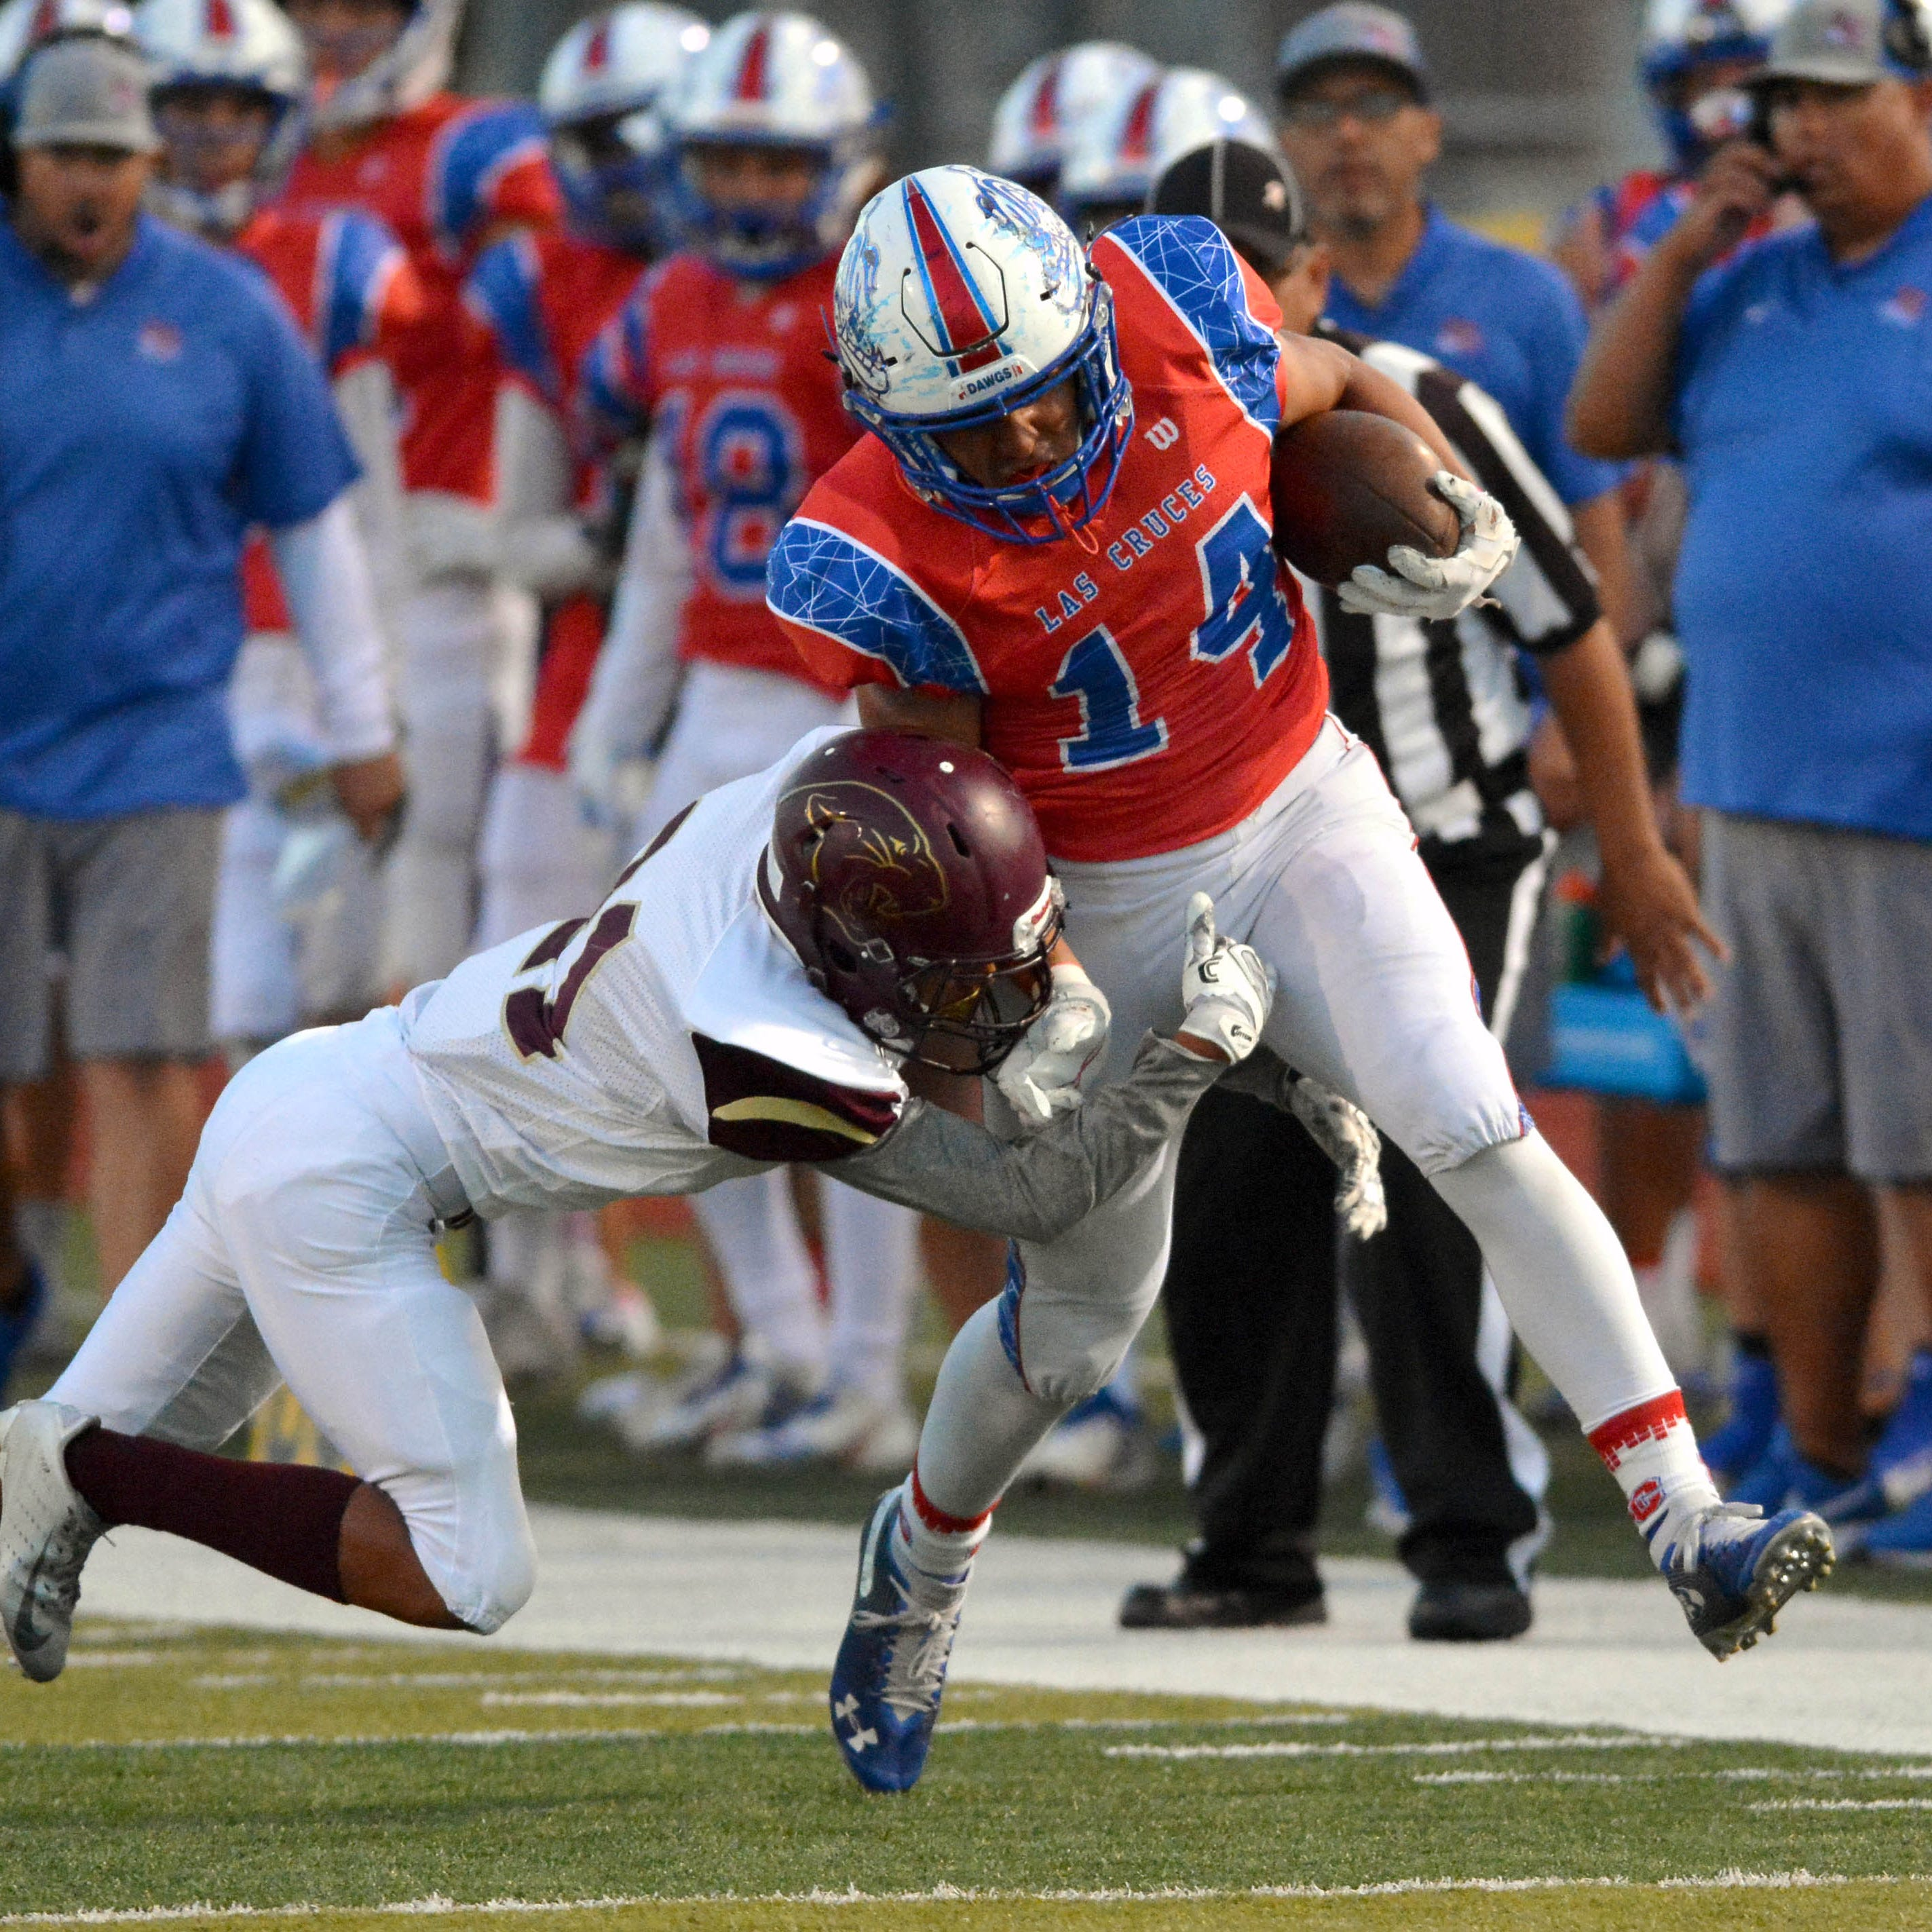 Las Cruces opens District 3-6A play with win over Gadsden